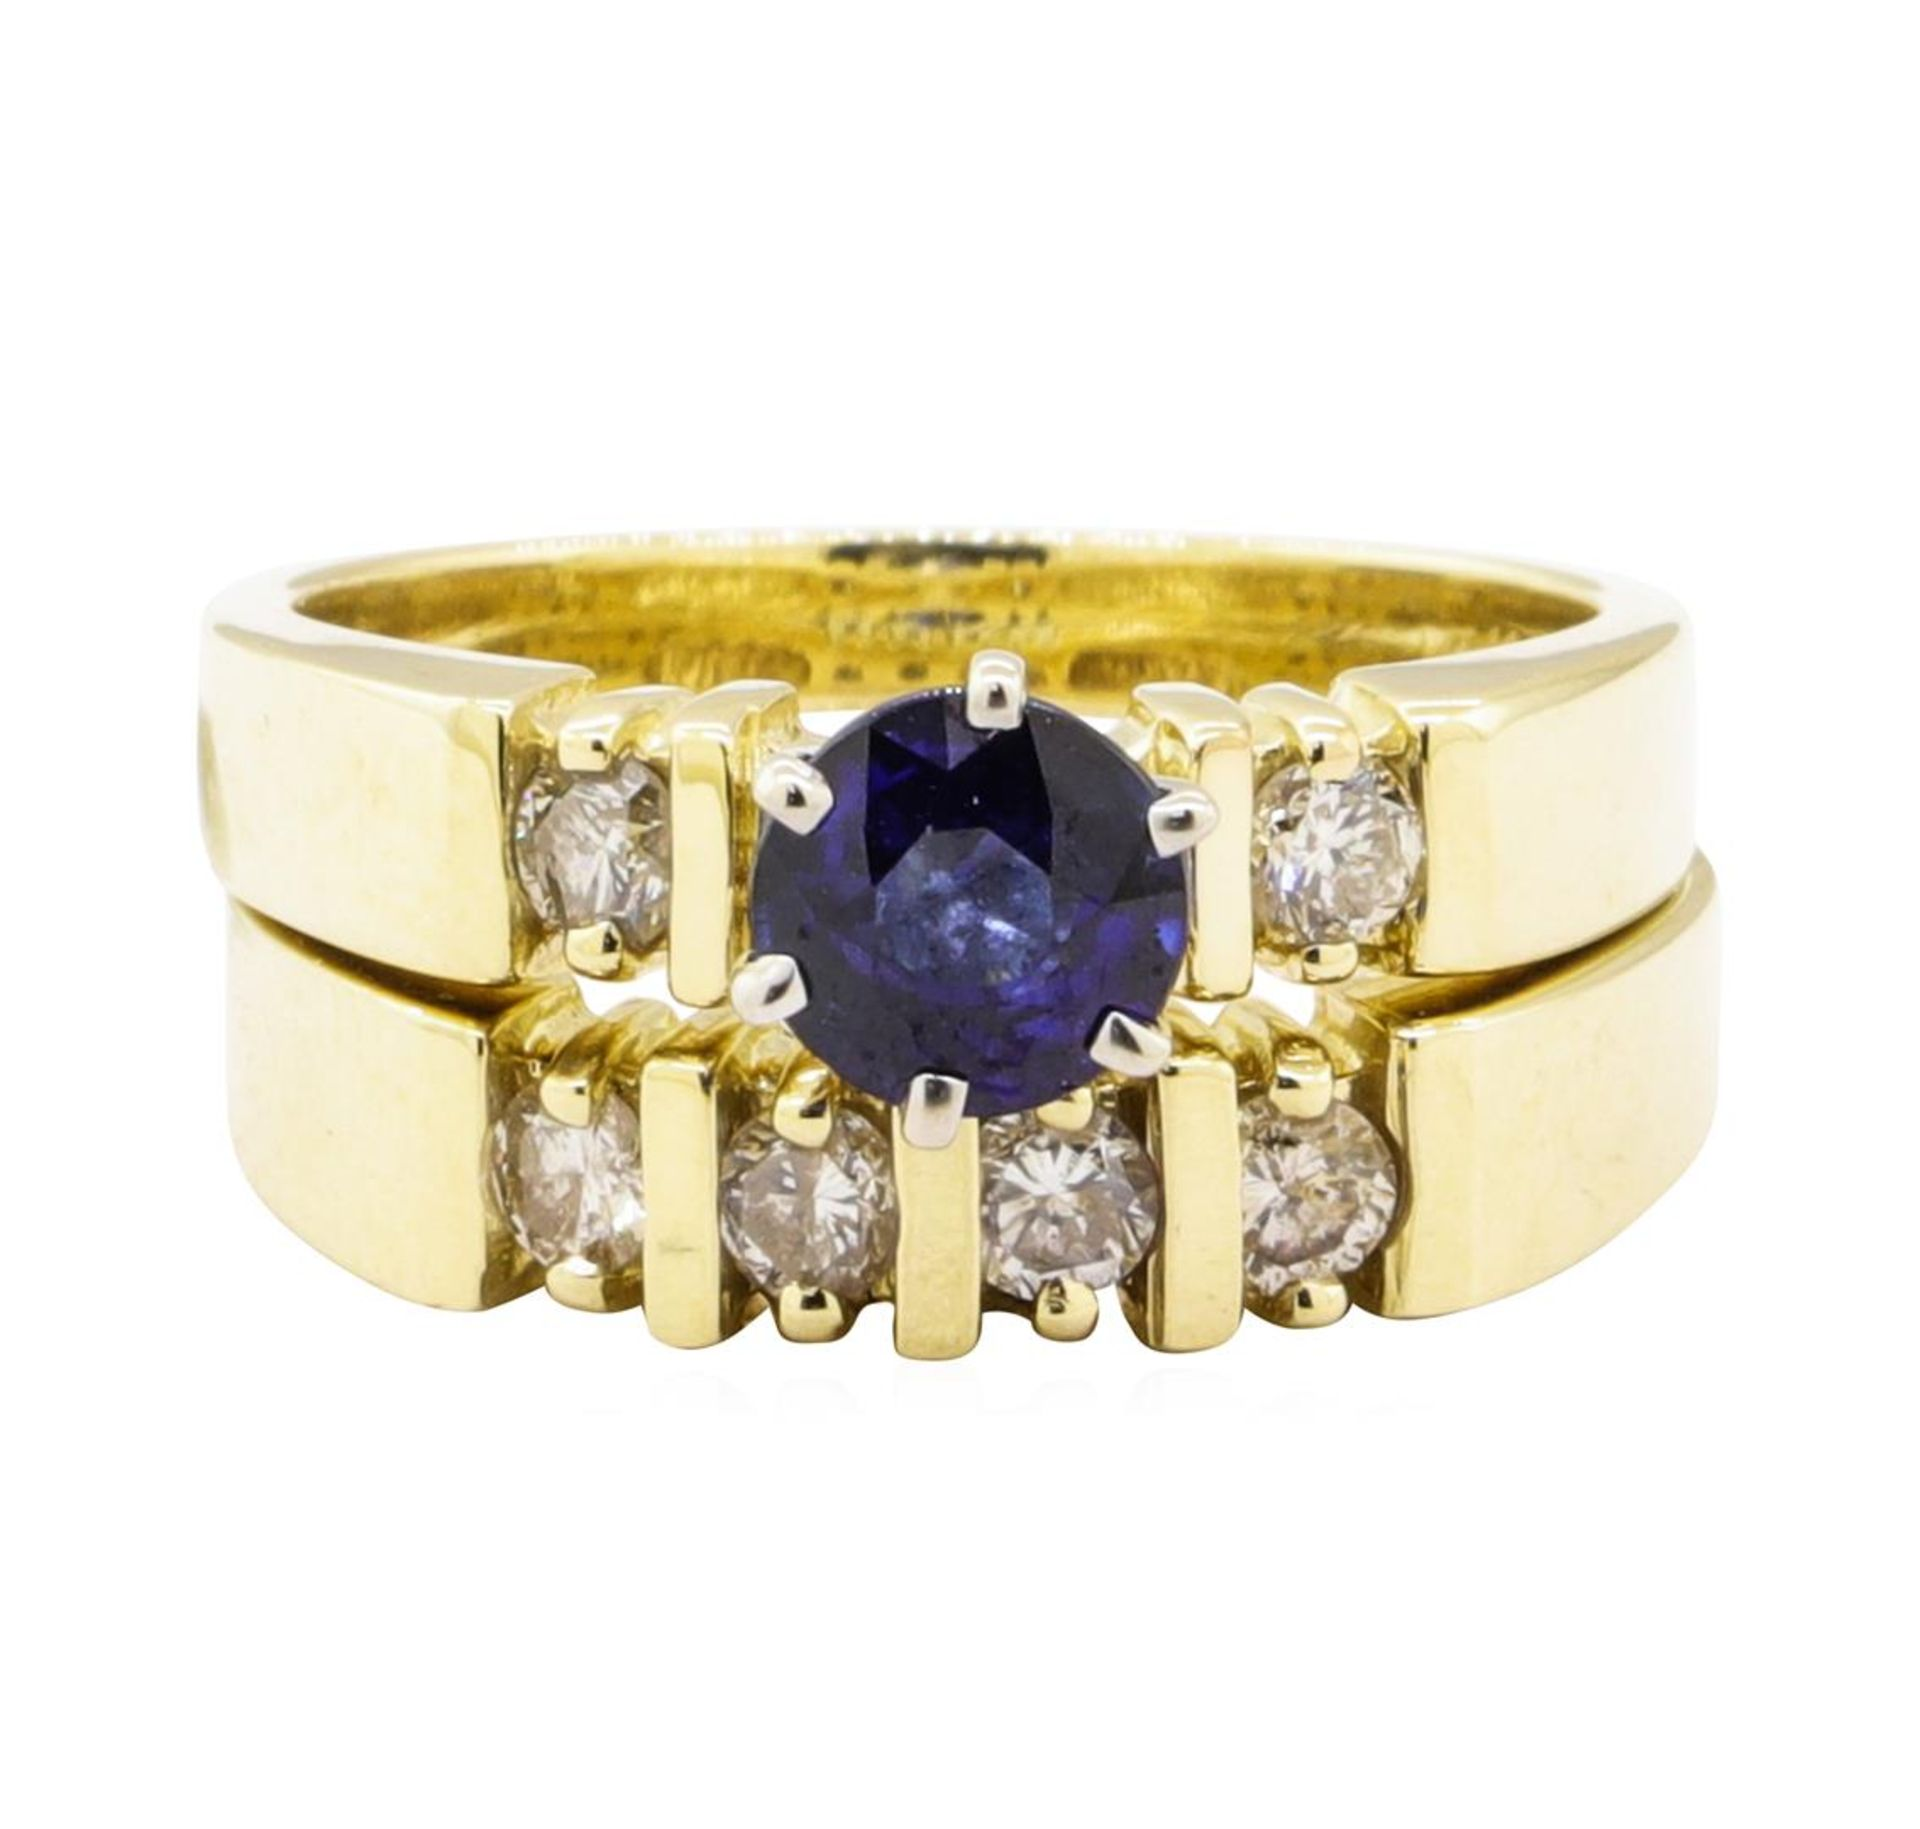 1.37 ctw Blue Sapphire And Diamond Ring And Band - 14KT Yellow Gold - Image 2 of 4